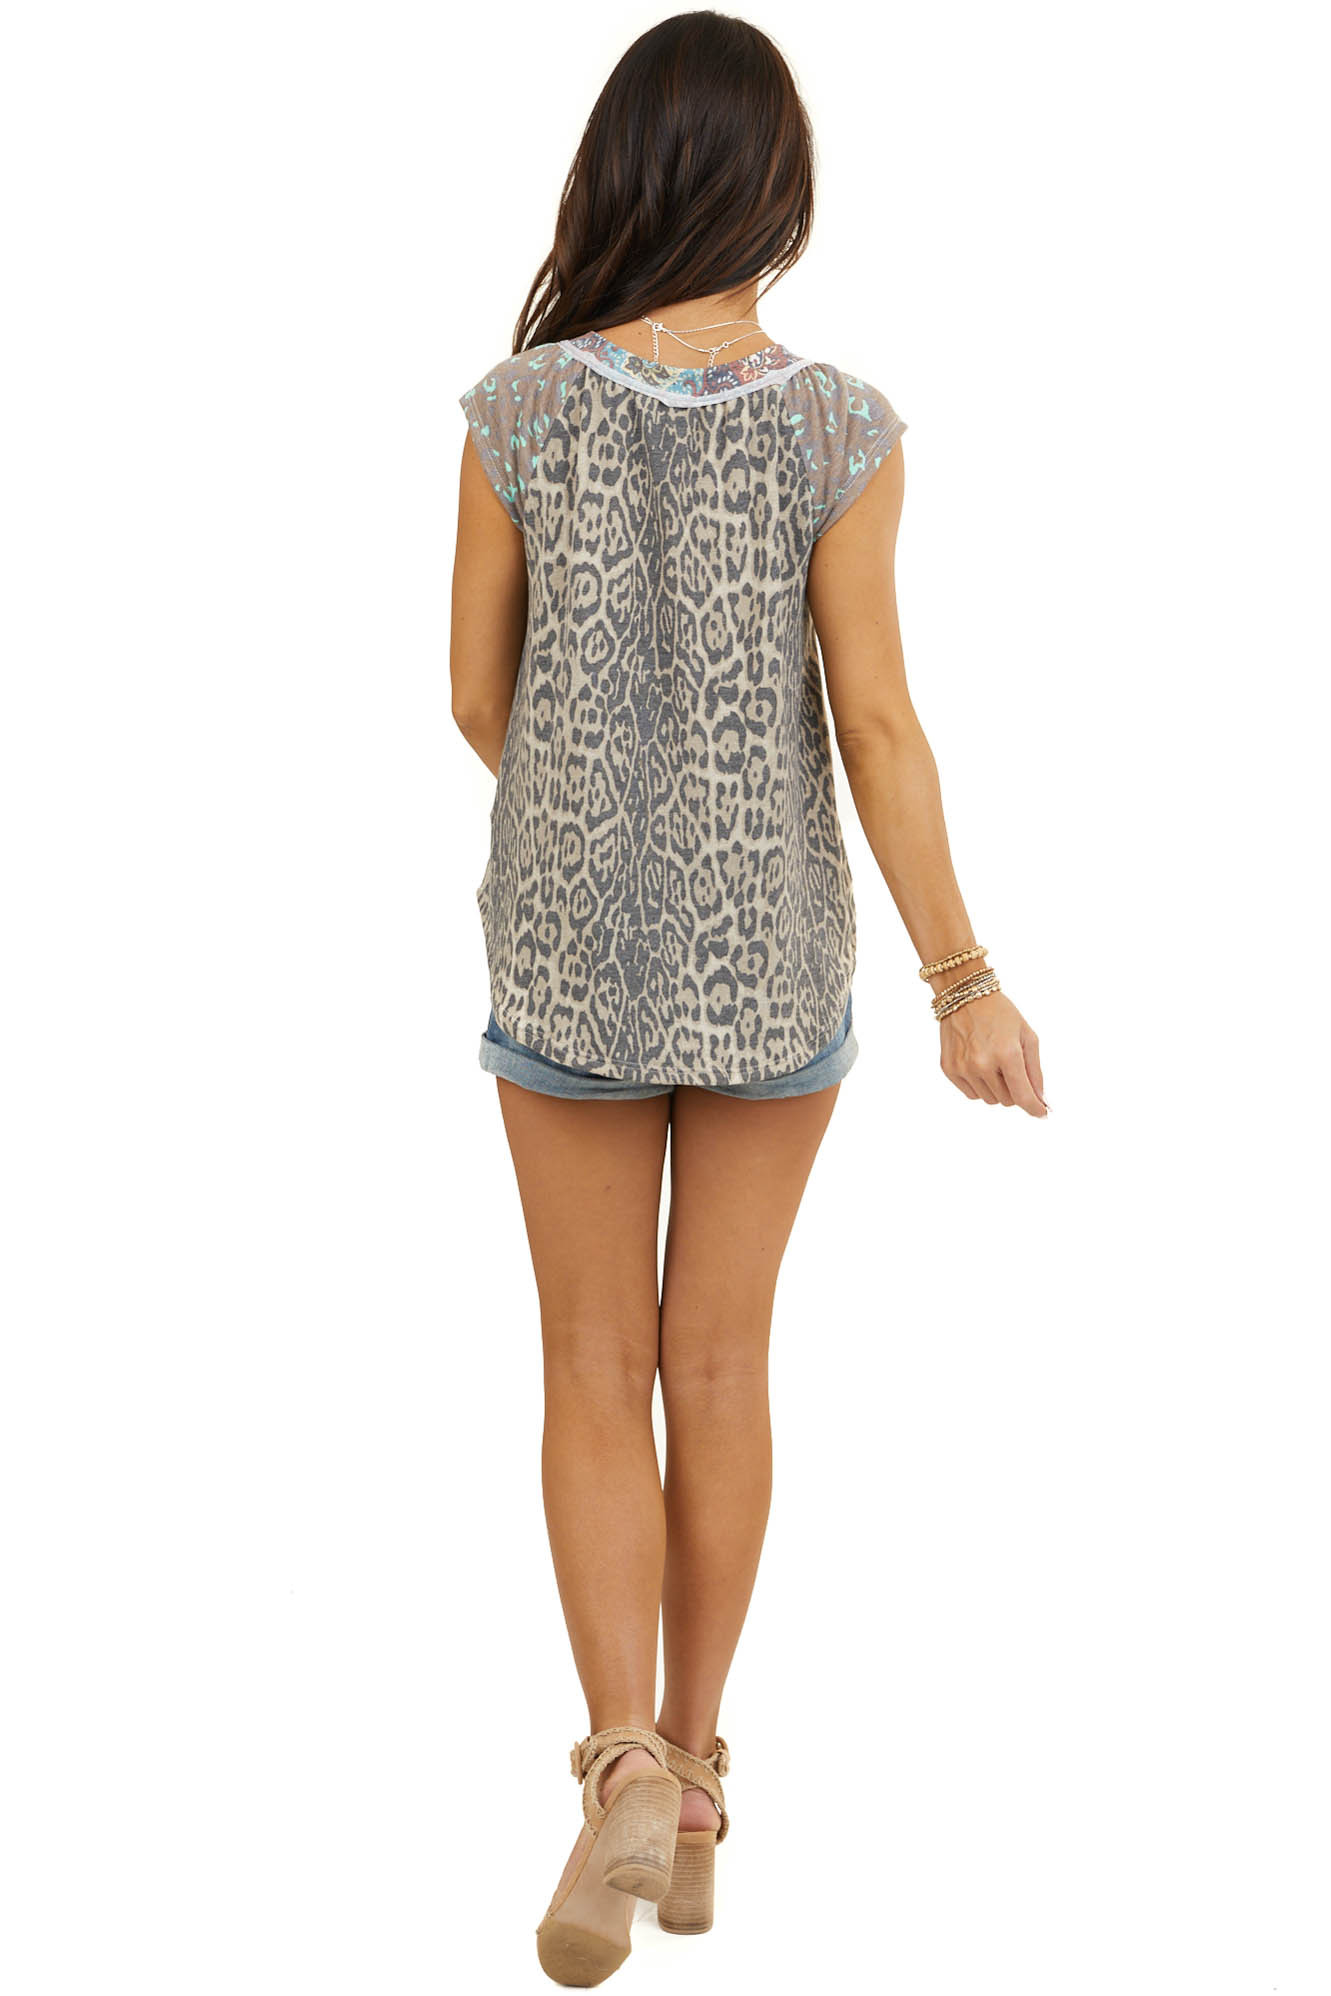 Mocha Leopard Print Top with Contrast Sleeves and Neckline